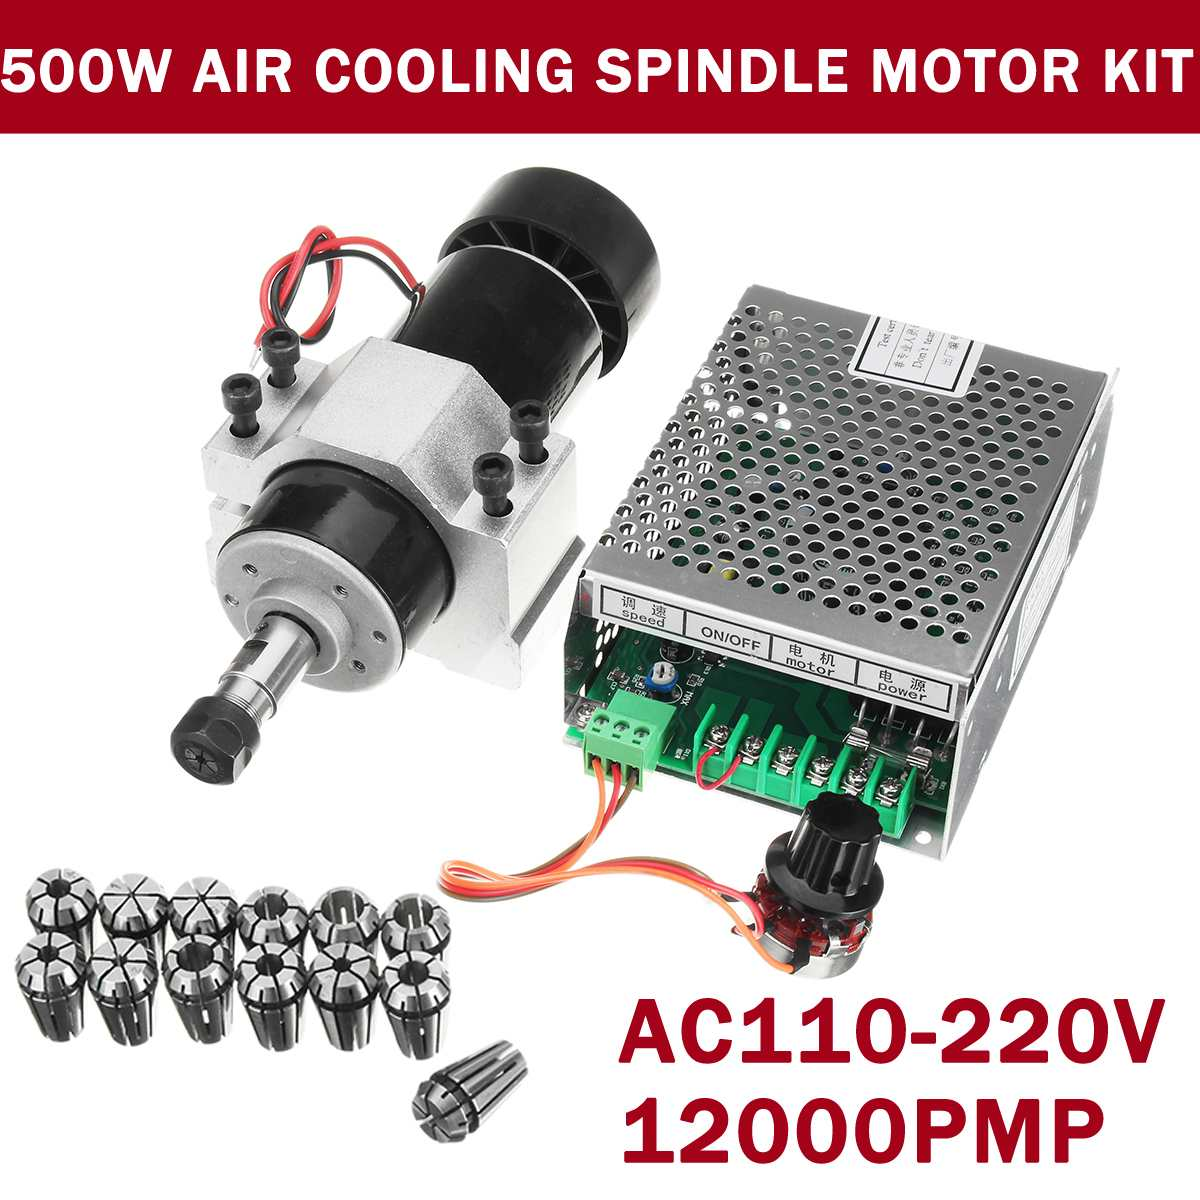 500W CNC Air Cooling Spindle Motor Engraving Machine Router 52mm Clamps Speed Governor ER11 Collet Chuck